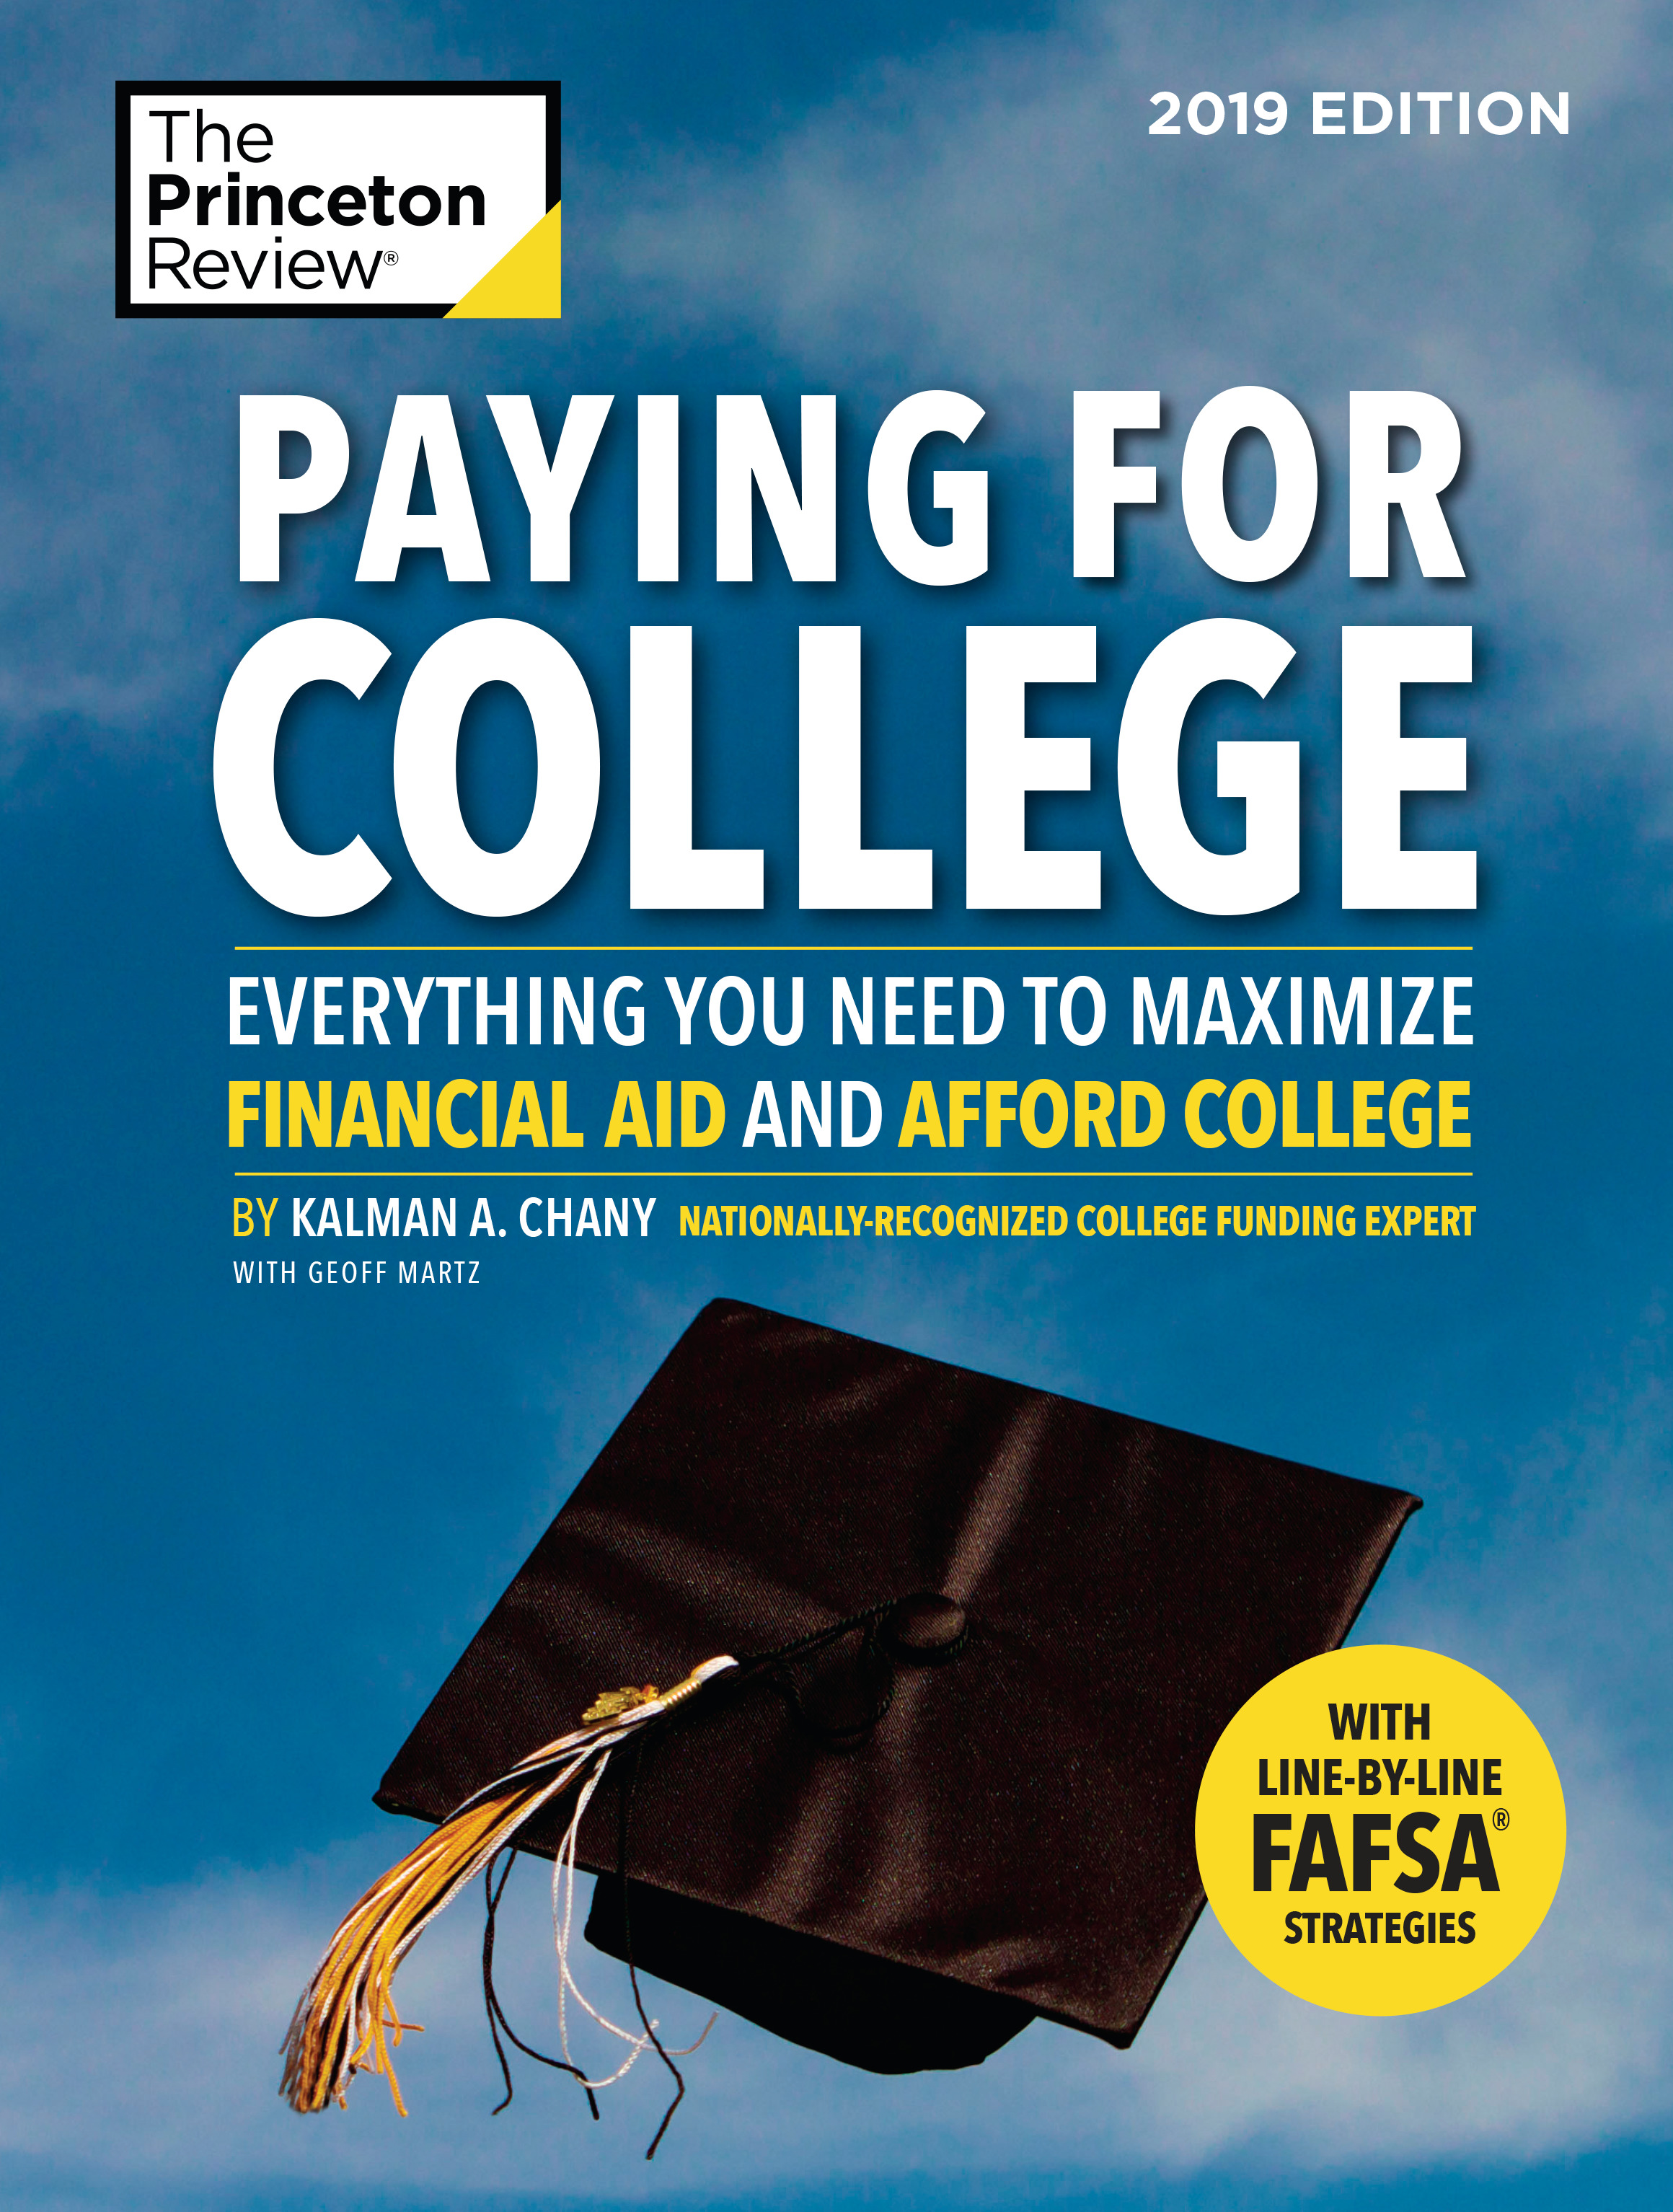 Buy your copy of Paying for College, 2019 edition